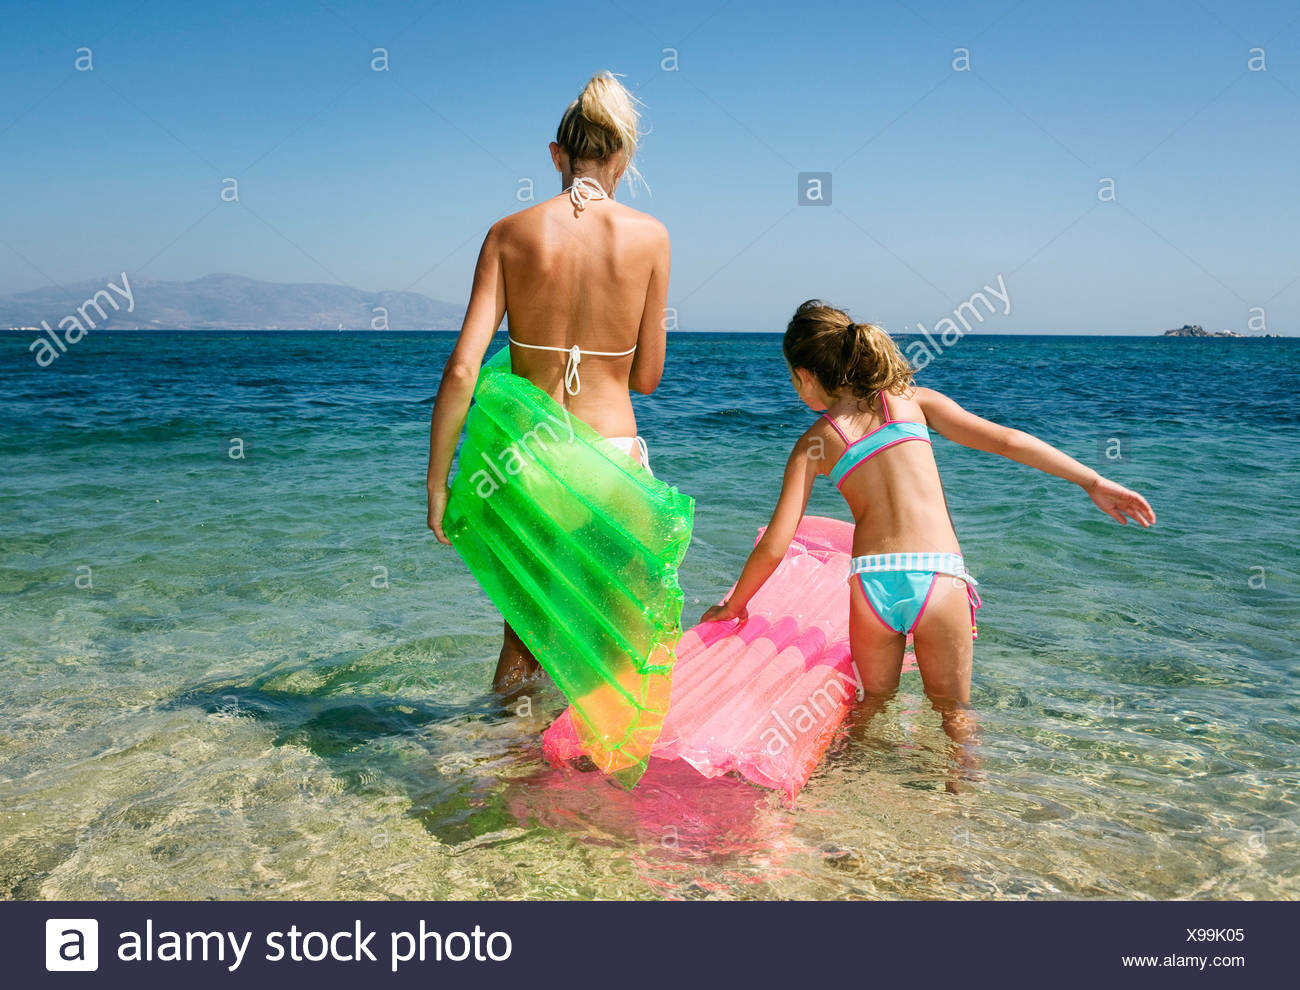 Woman with young girl at the beach with inflatable rafts. Stock Photo